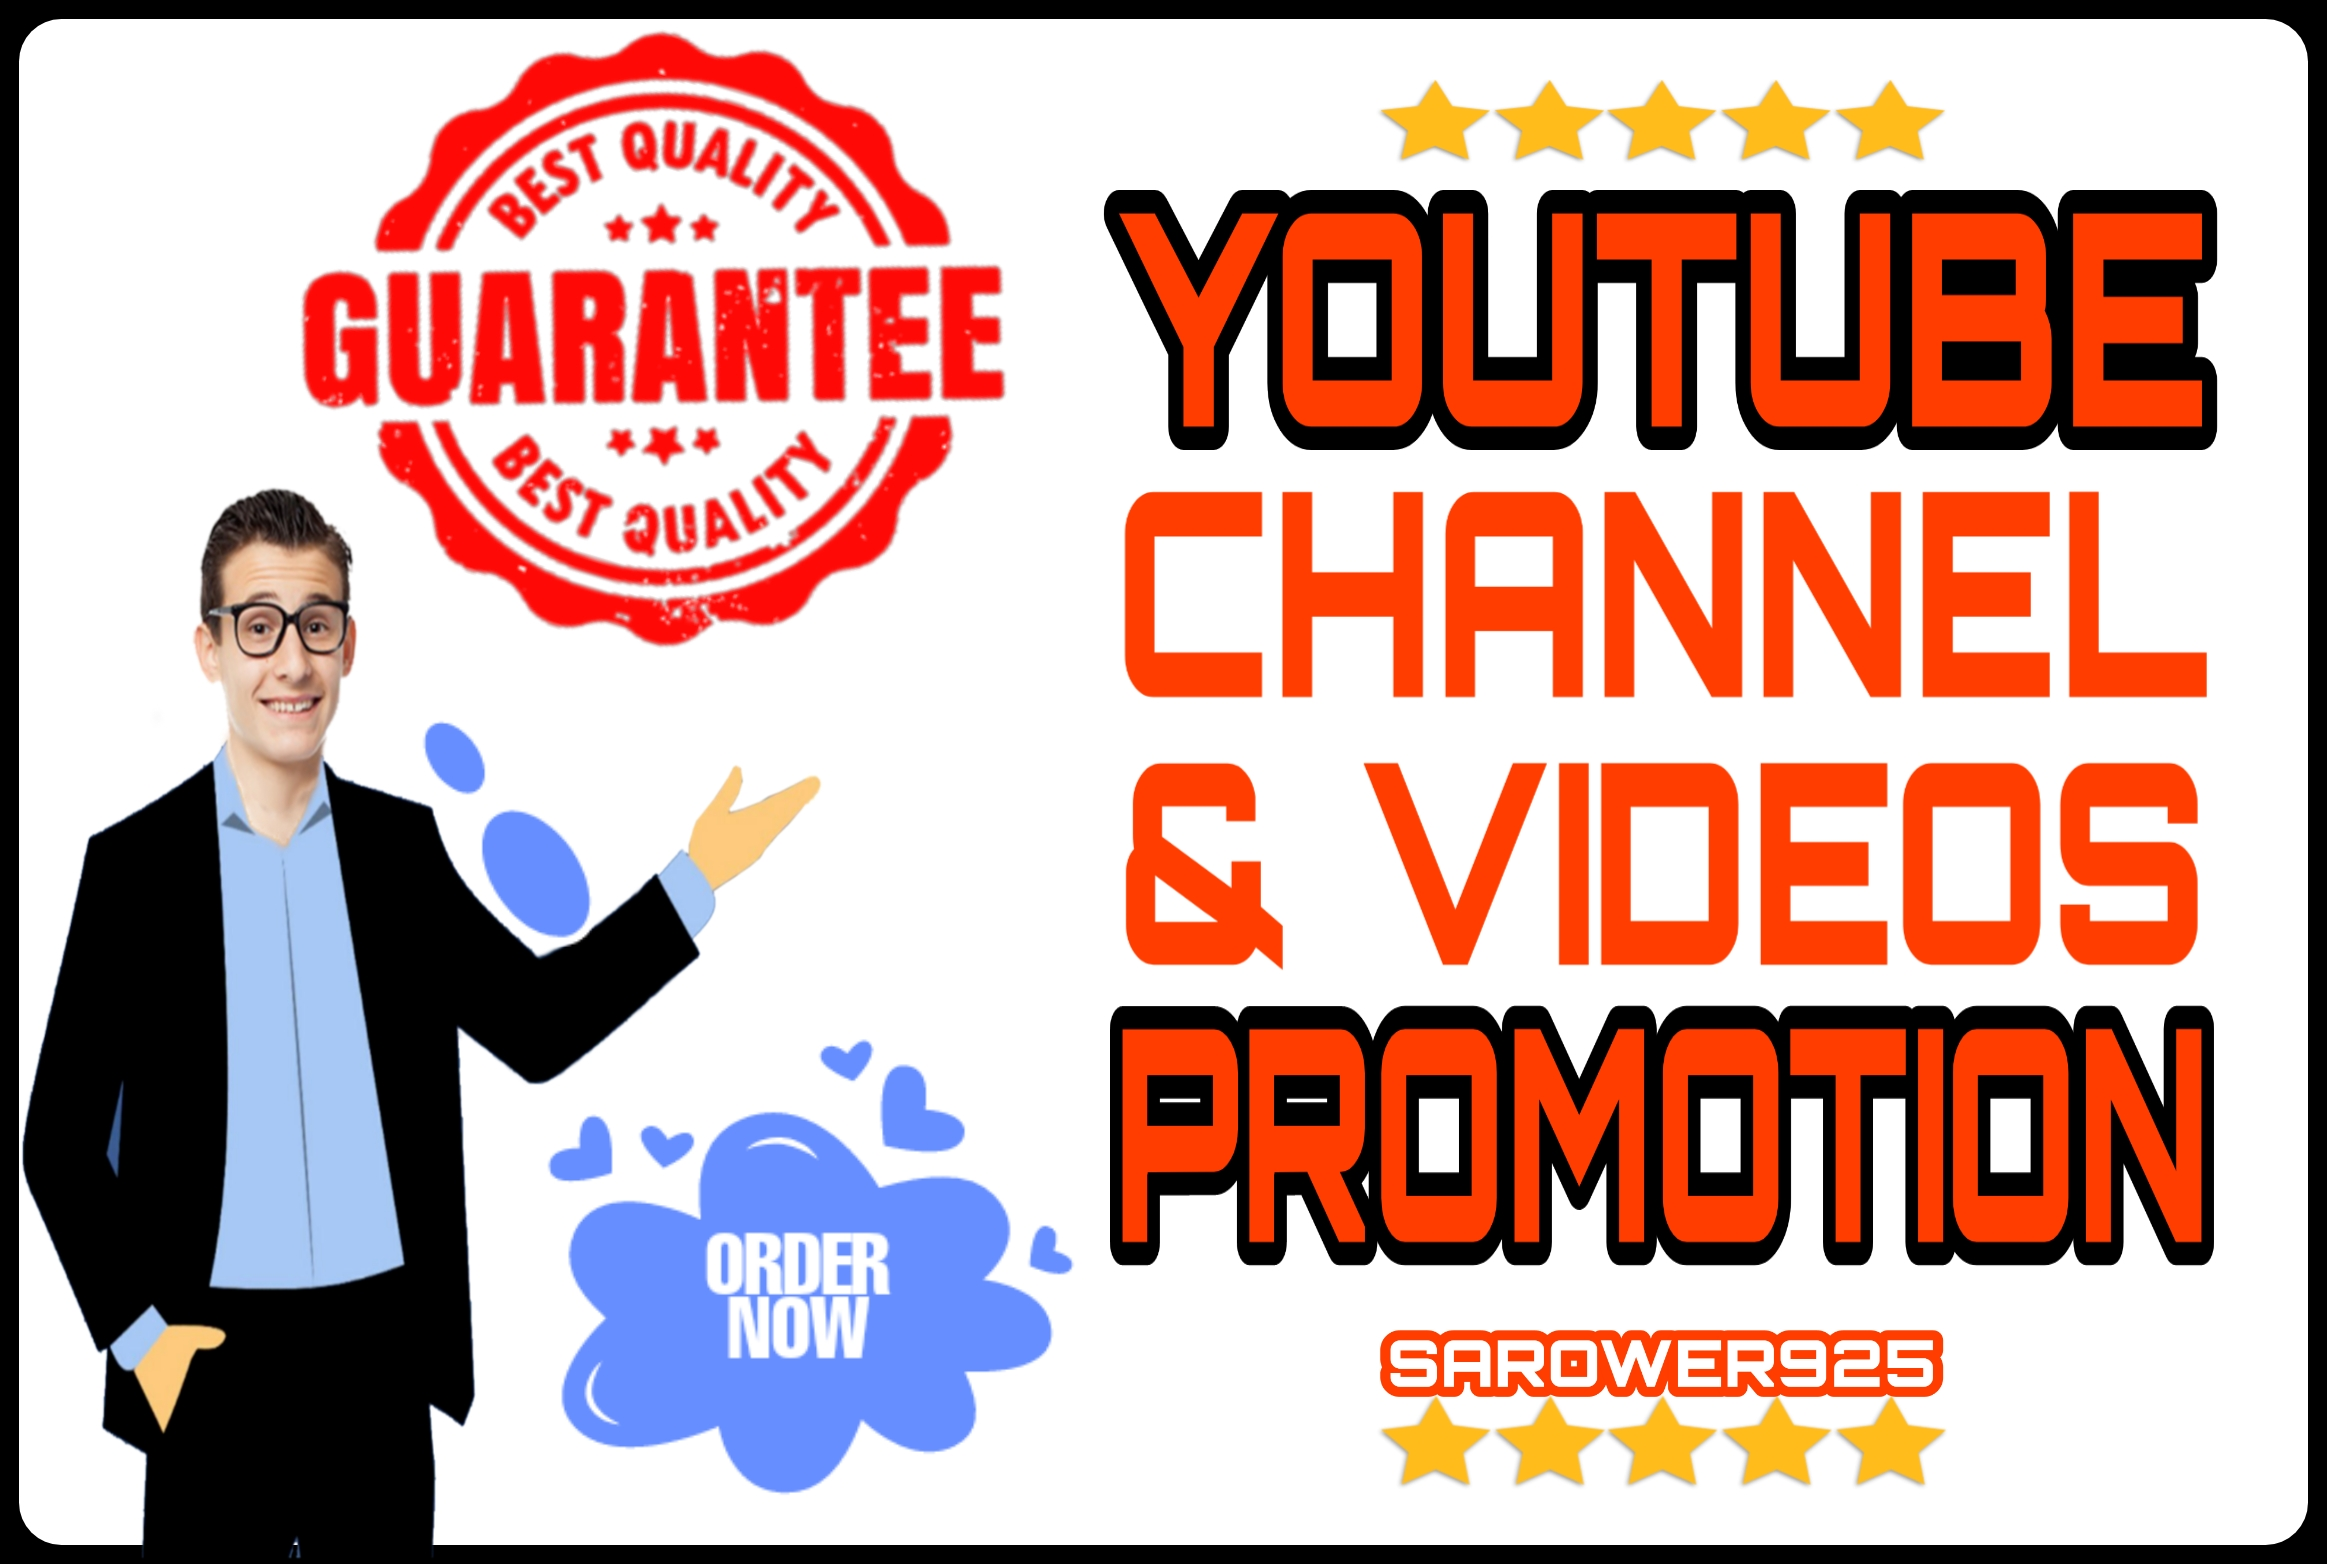 High Quality youtube videos promotion & marketing